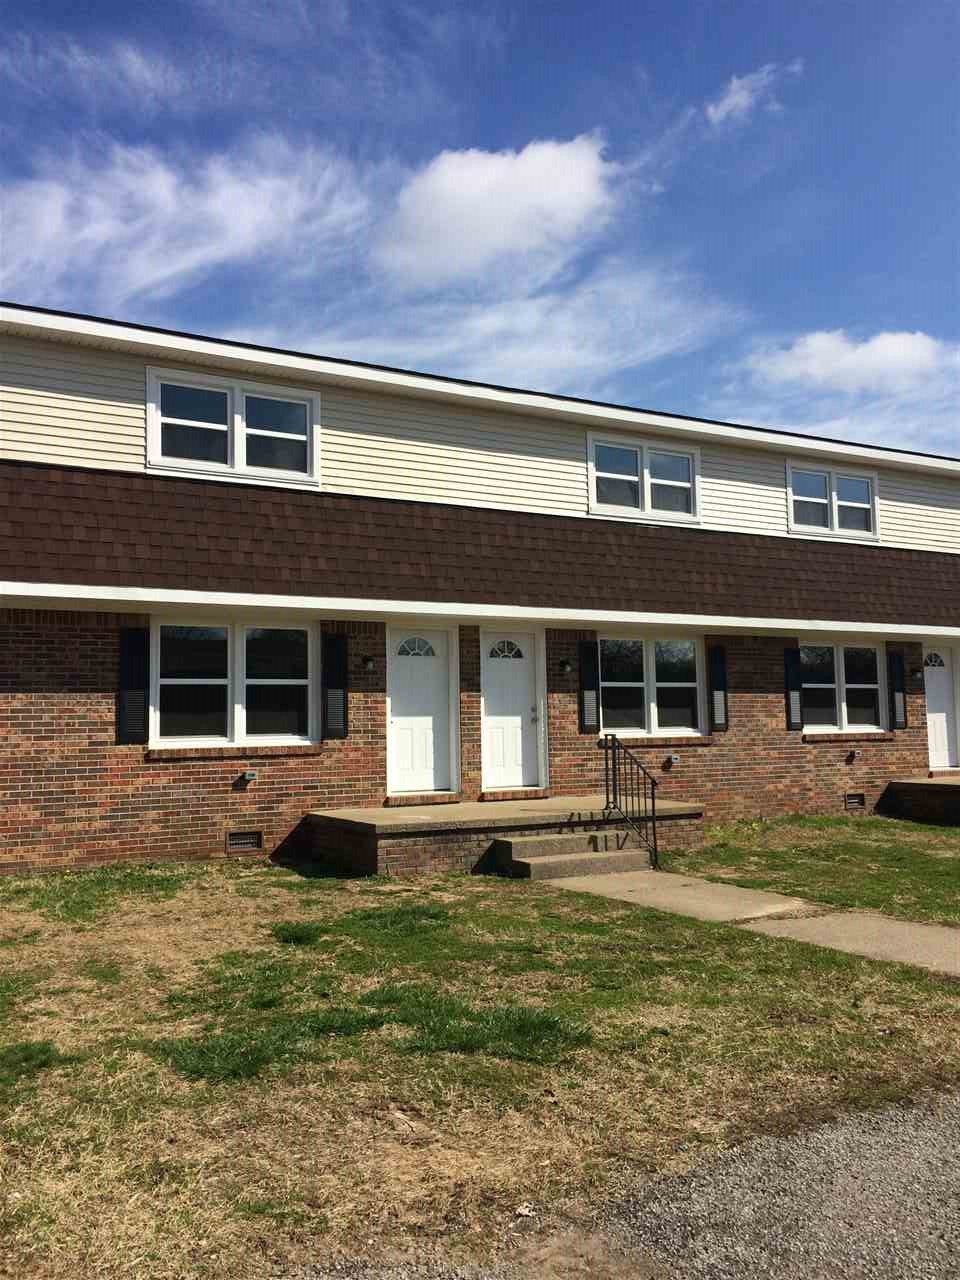 Rental Homes for Rent, ListingId:32536191, location: 214 Glenn St Paducah 42003